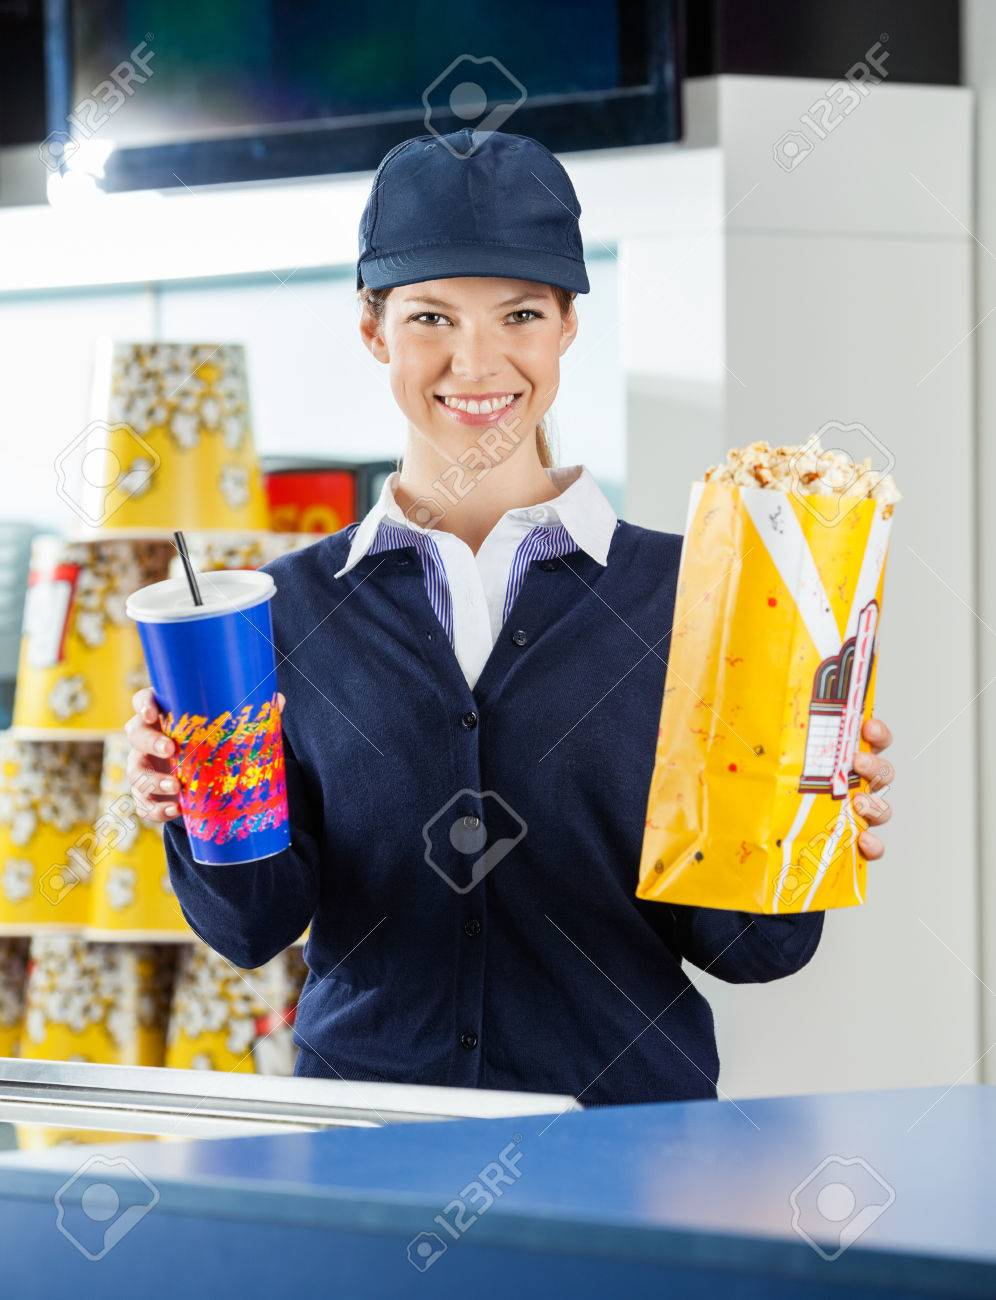 happy worker holding popcorn and drink cinema concession counter happy worker holding popcorn and drink cinema concession counter stock photo 34105354